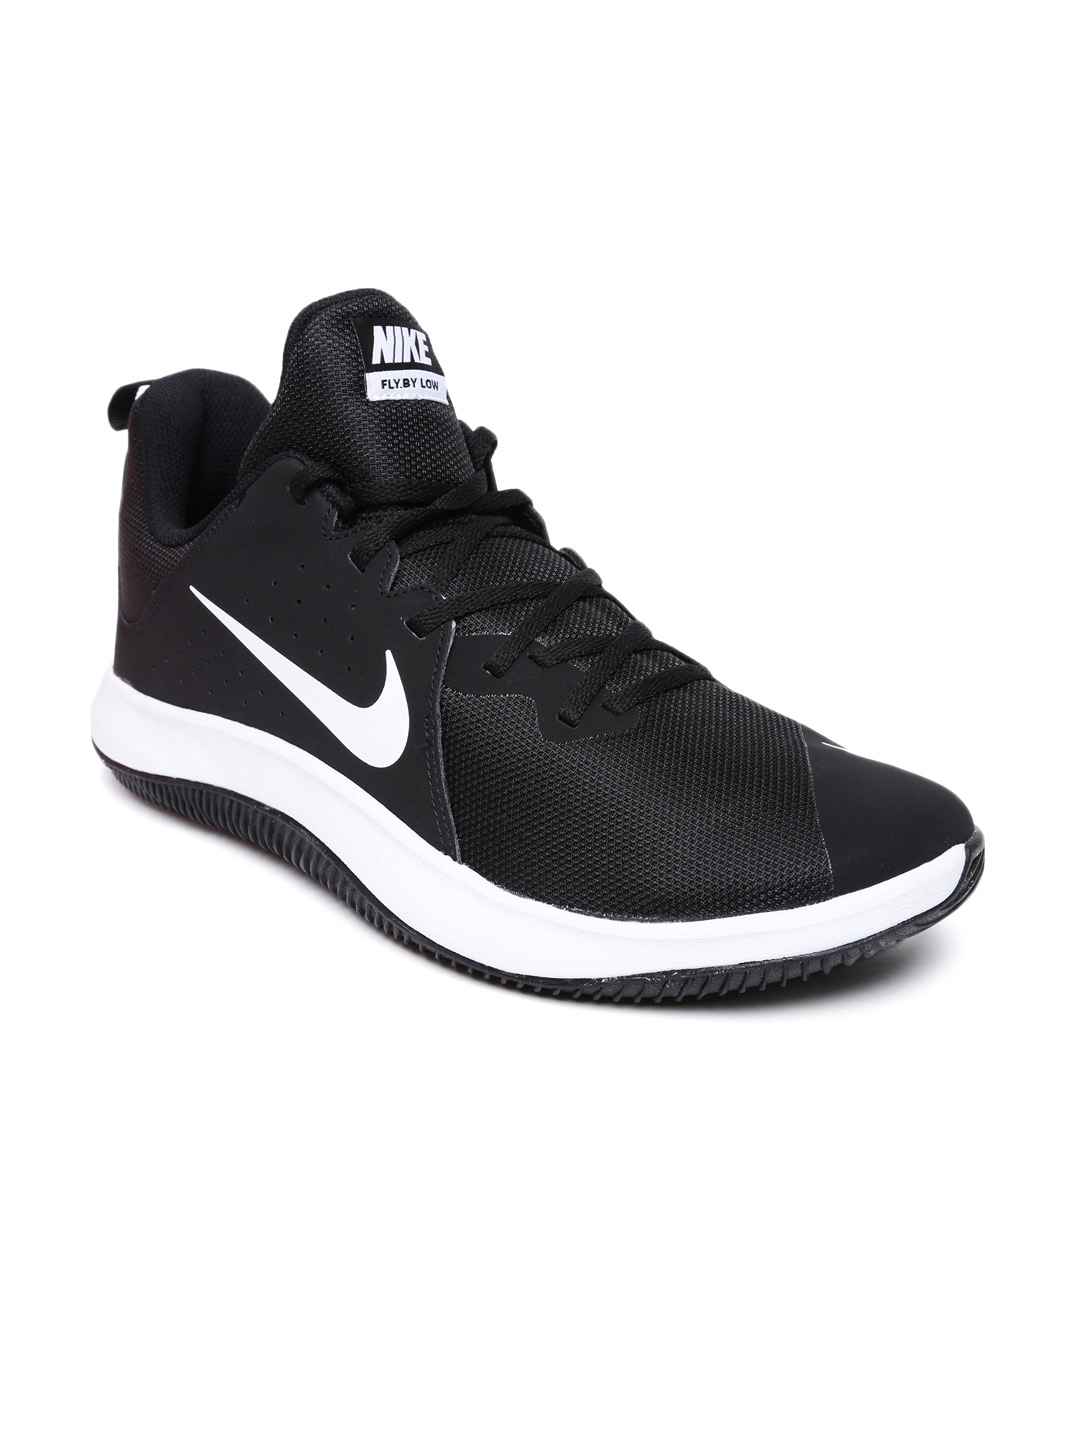 a423a1f8e44 Buy Nike Men Black FLY.BY LOW Basketball Shoes - Sports Shoes for ...